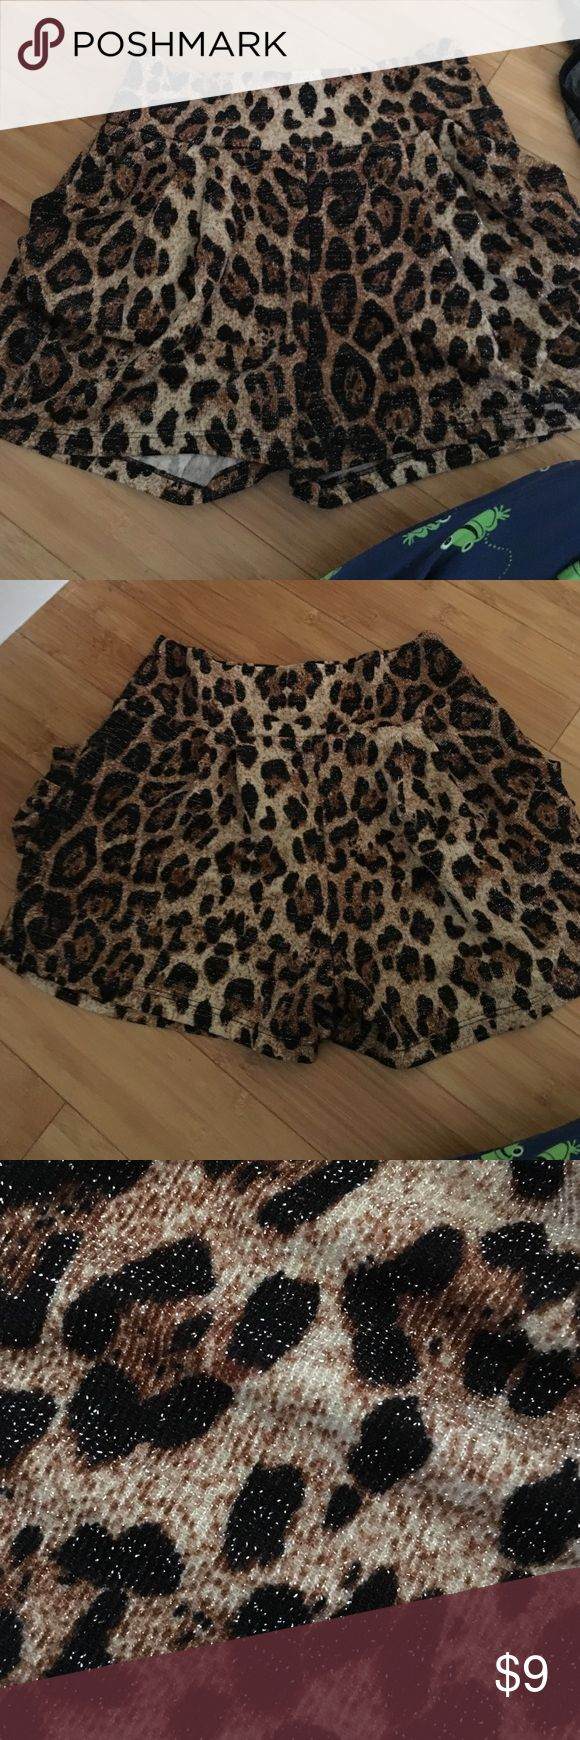 Leopard Print Shorts These shorts are elastic. Have pockets. Figure flattering. Shorts